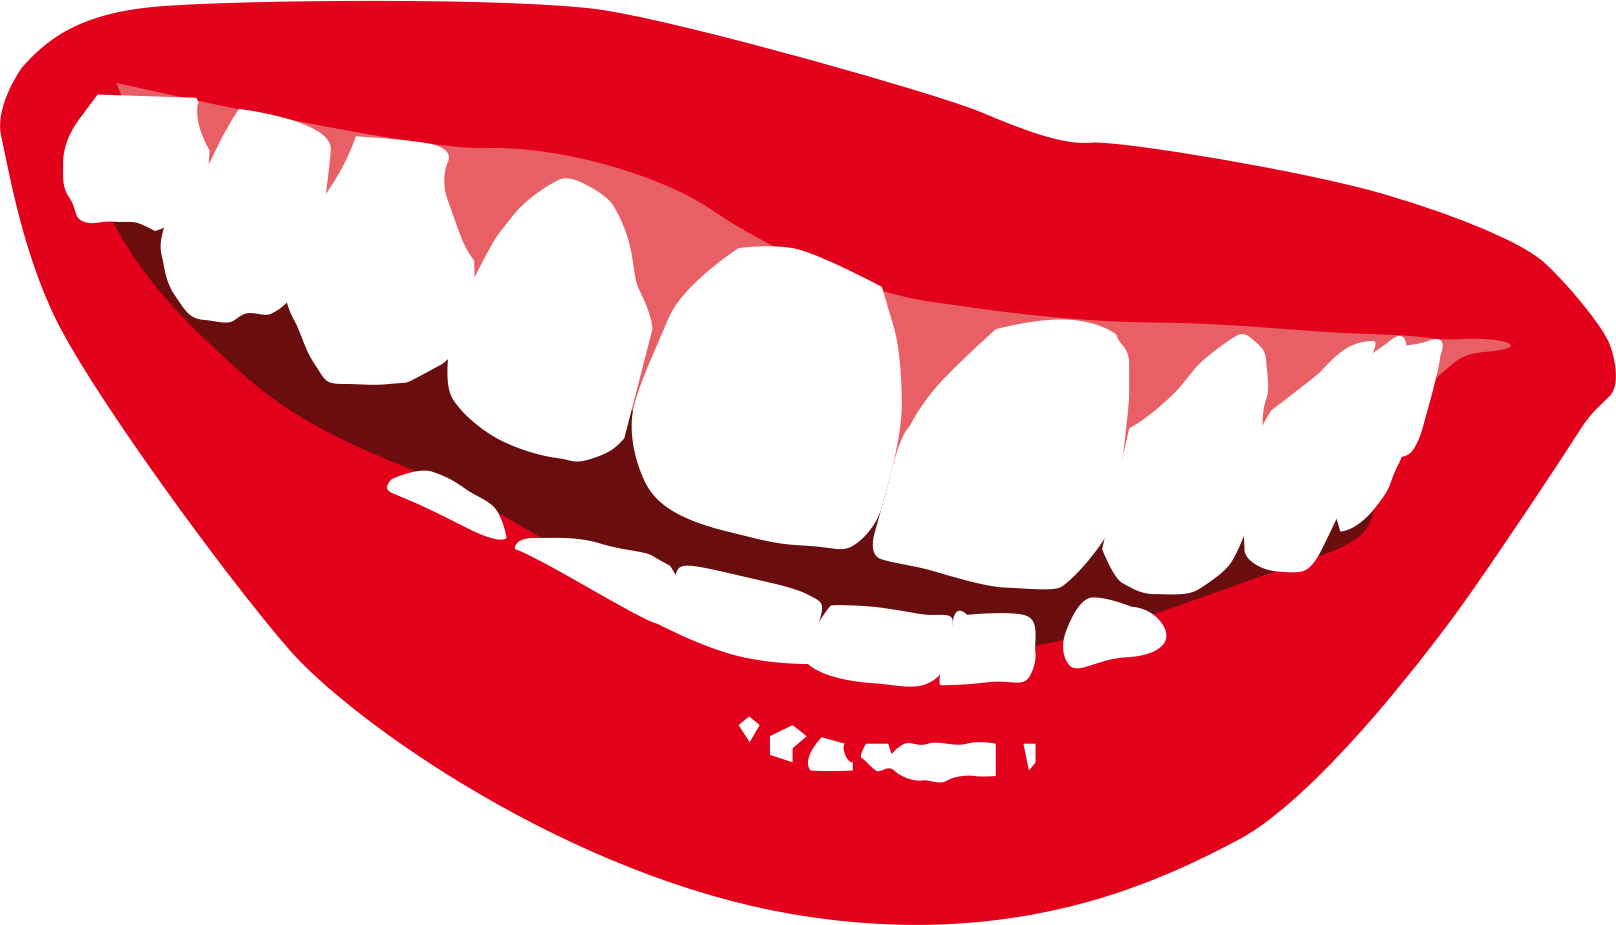 Mouth smile png images. Drawing smirk lip vector transparent download